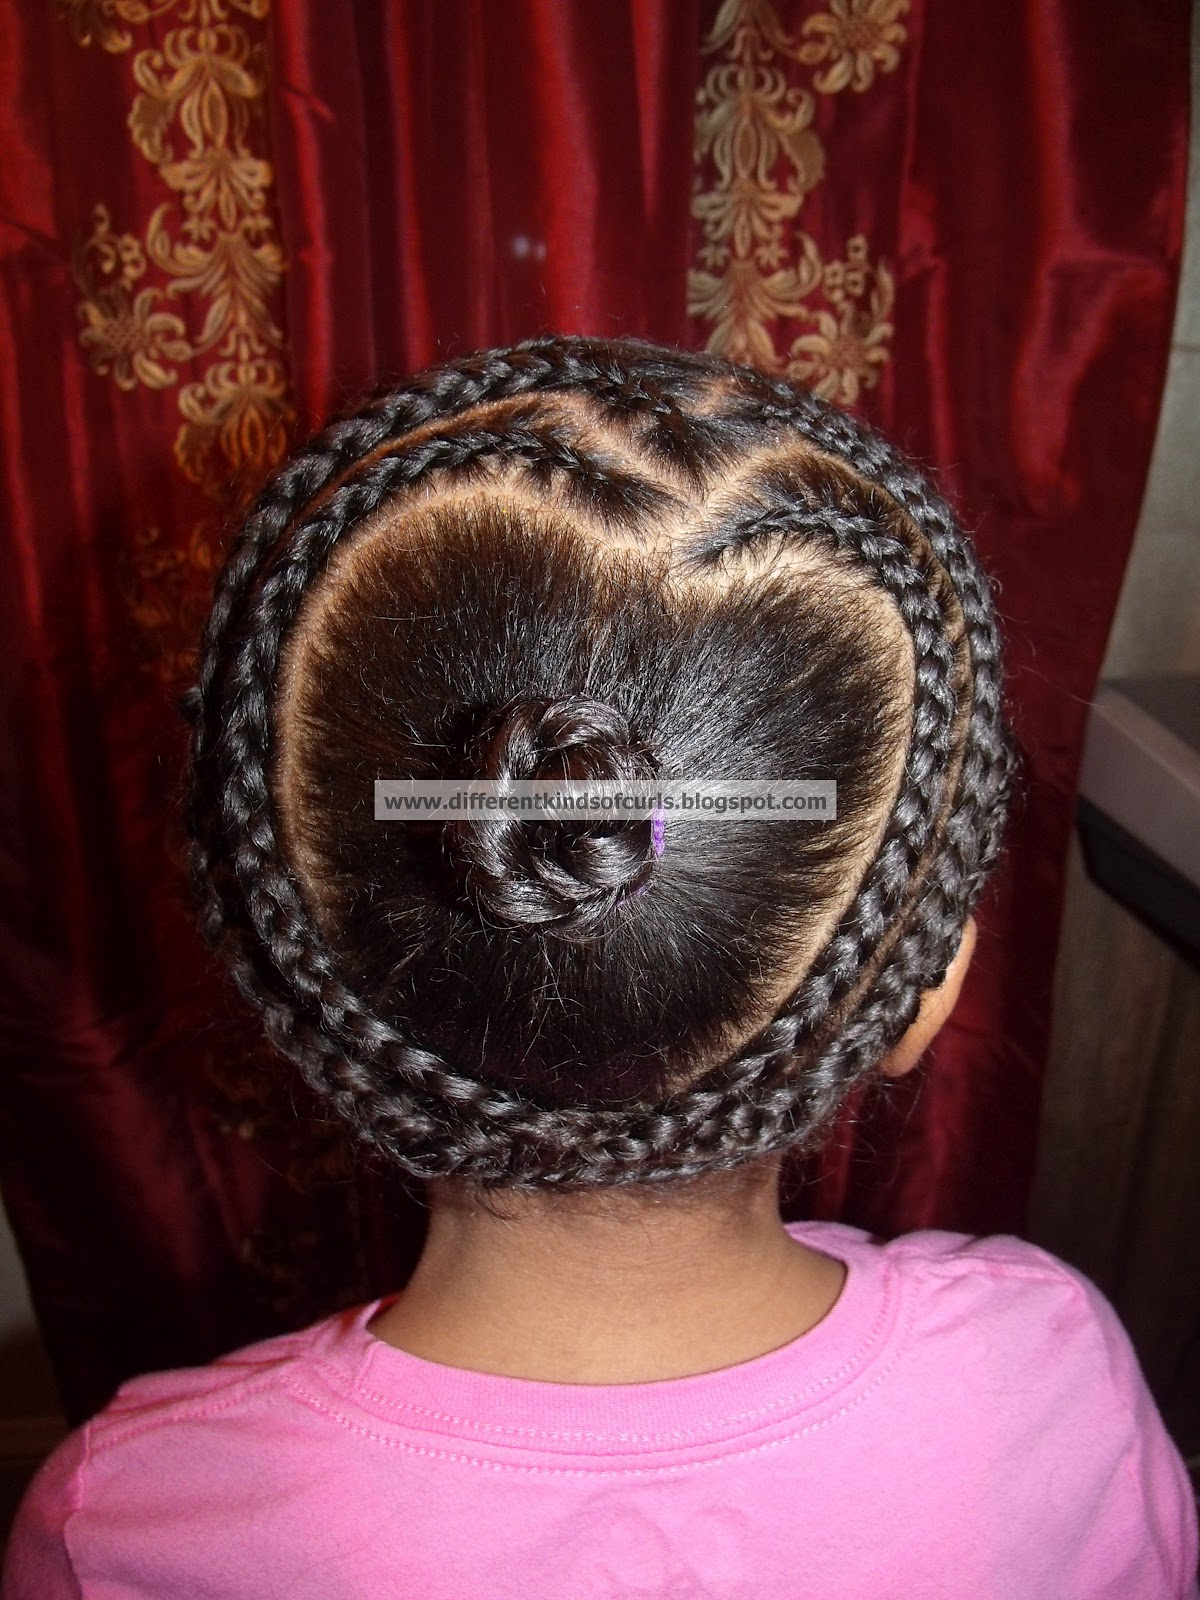 Sensational Different Kinds Of Curls Cute Protective Valentine39S Day Short Hairstyles Gunalazisus